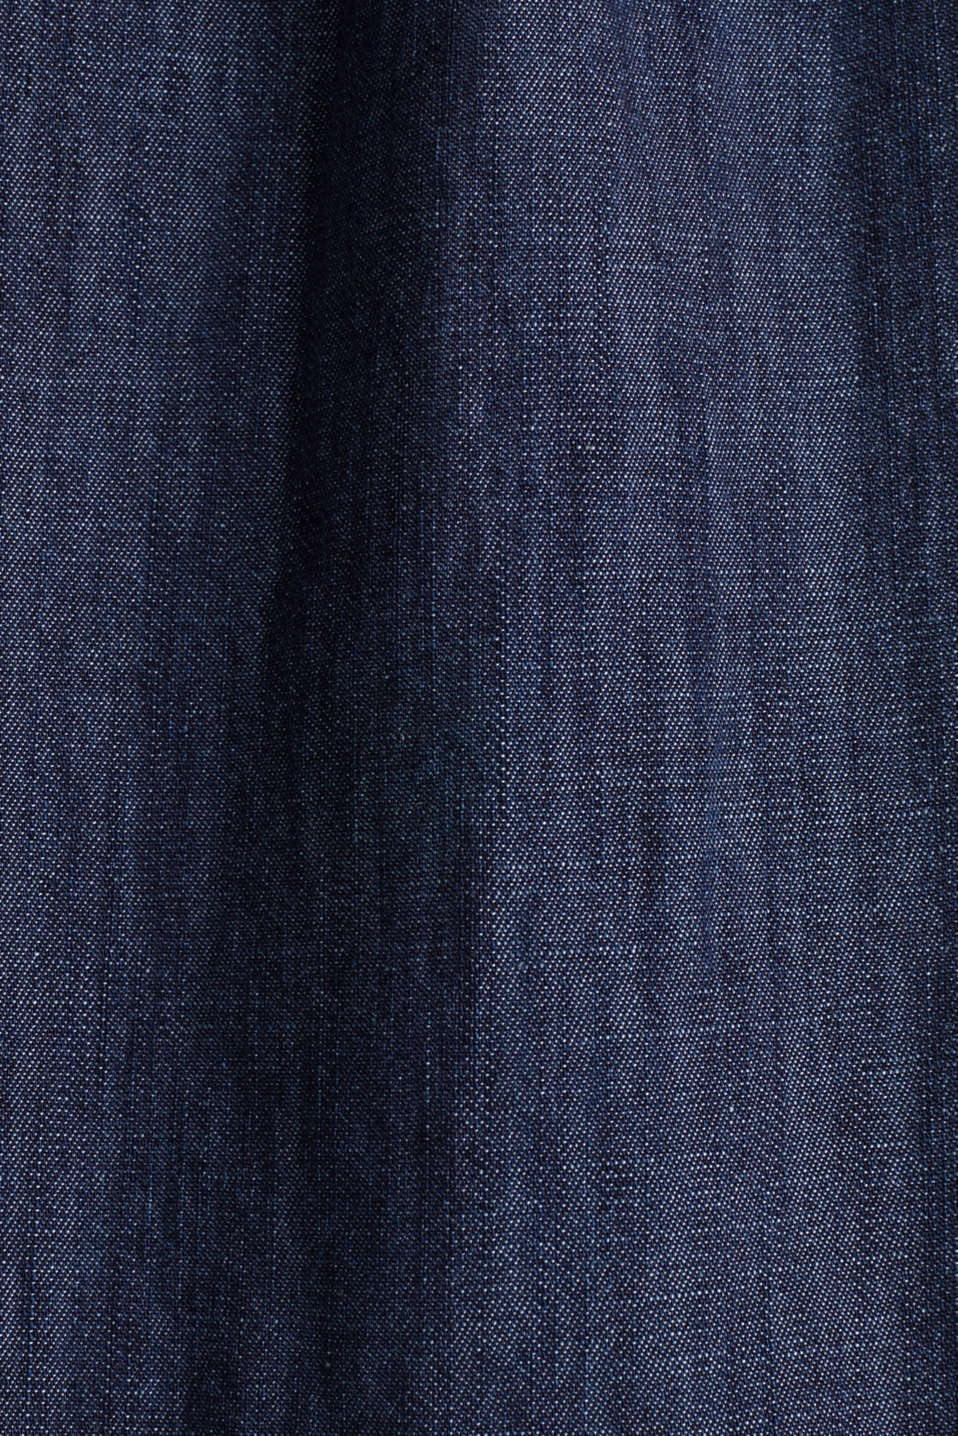 Denim tent dress made of 100% cotton, BLUE RINSE, detail image number 3